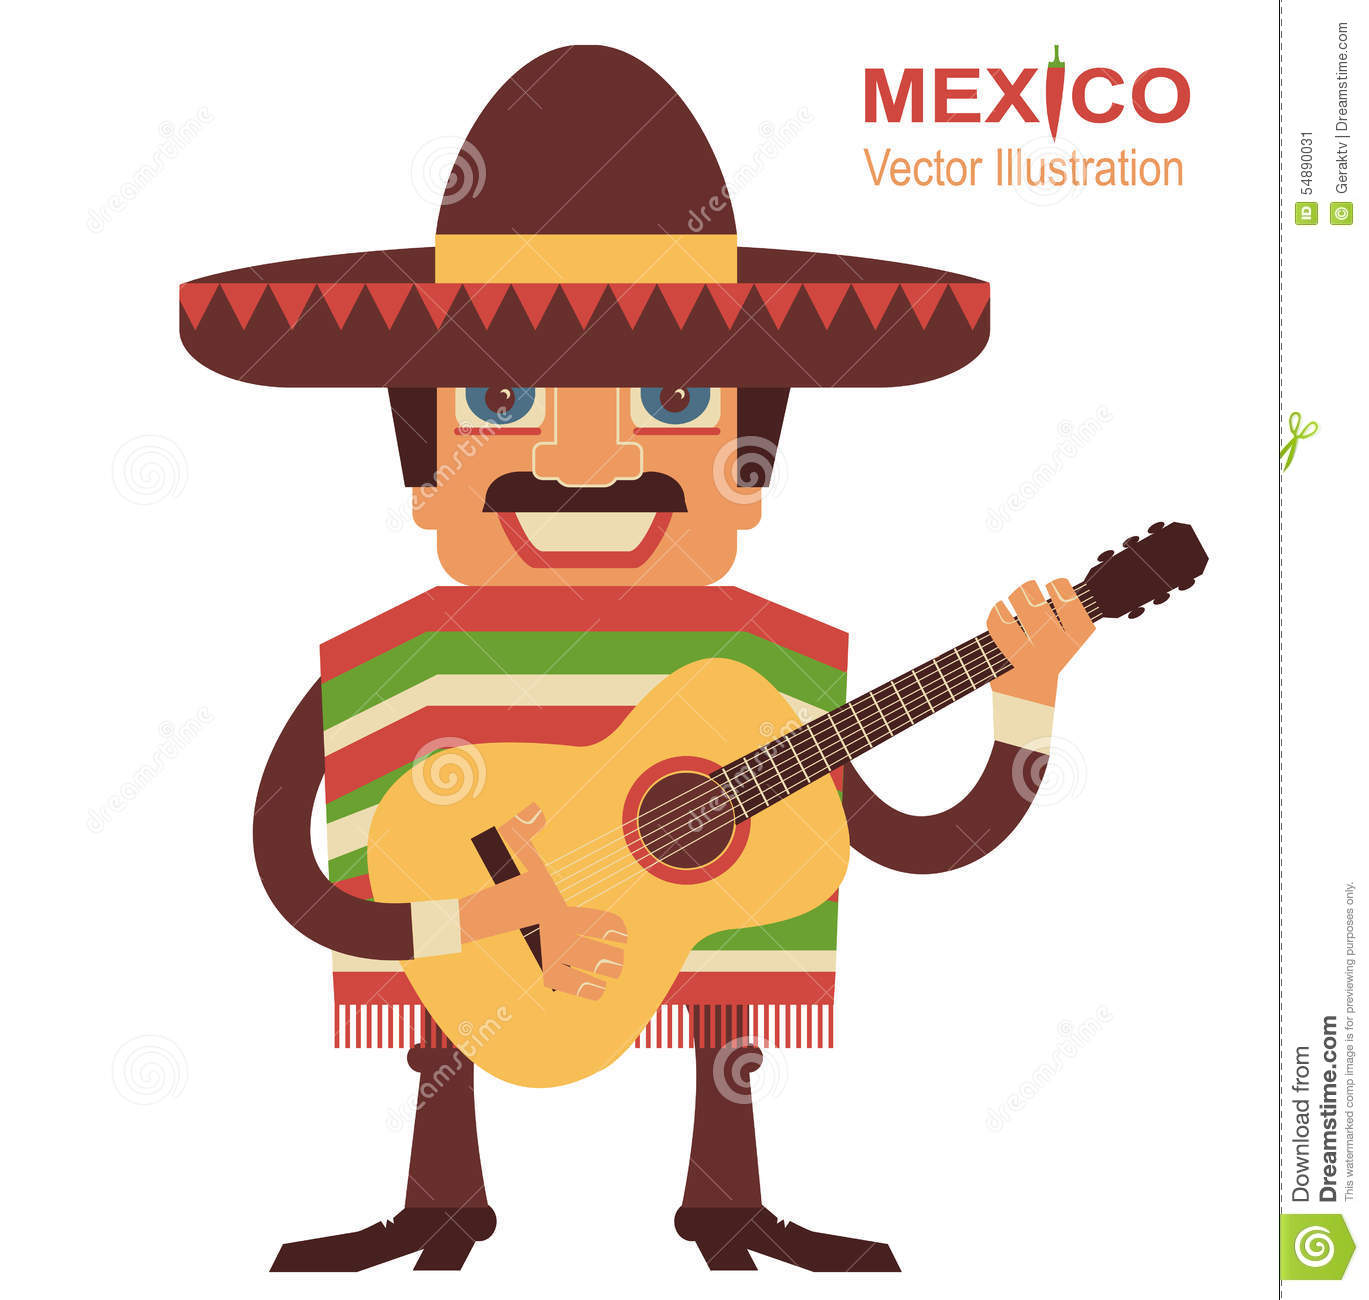 Mexican Man Singer With Guitar Stock Vector - Image: 54890031